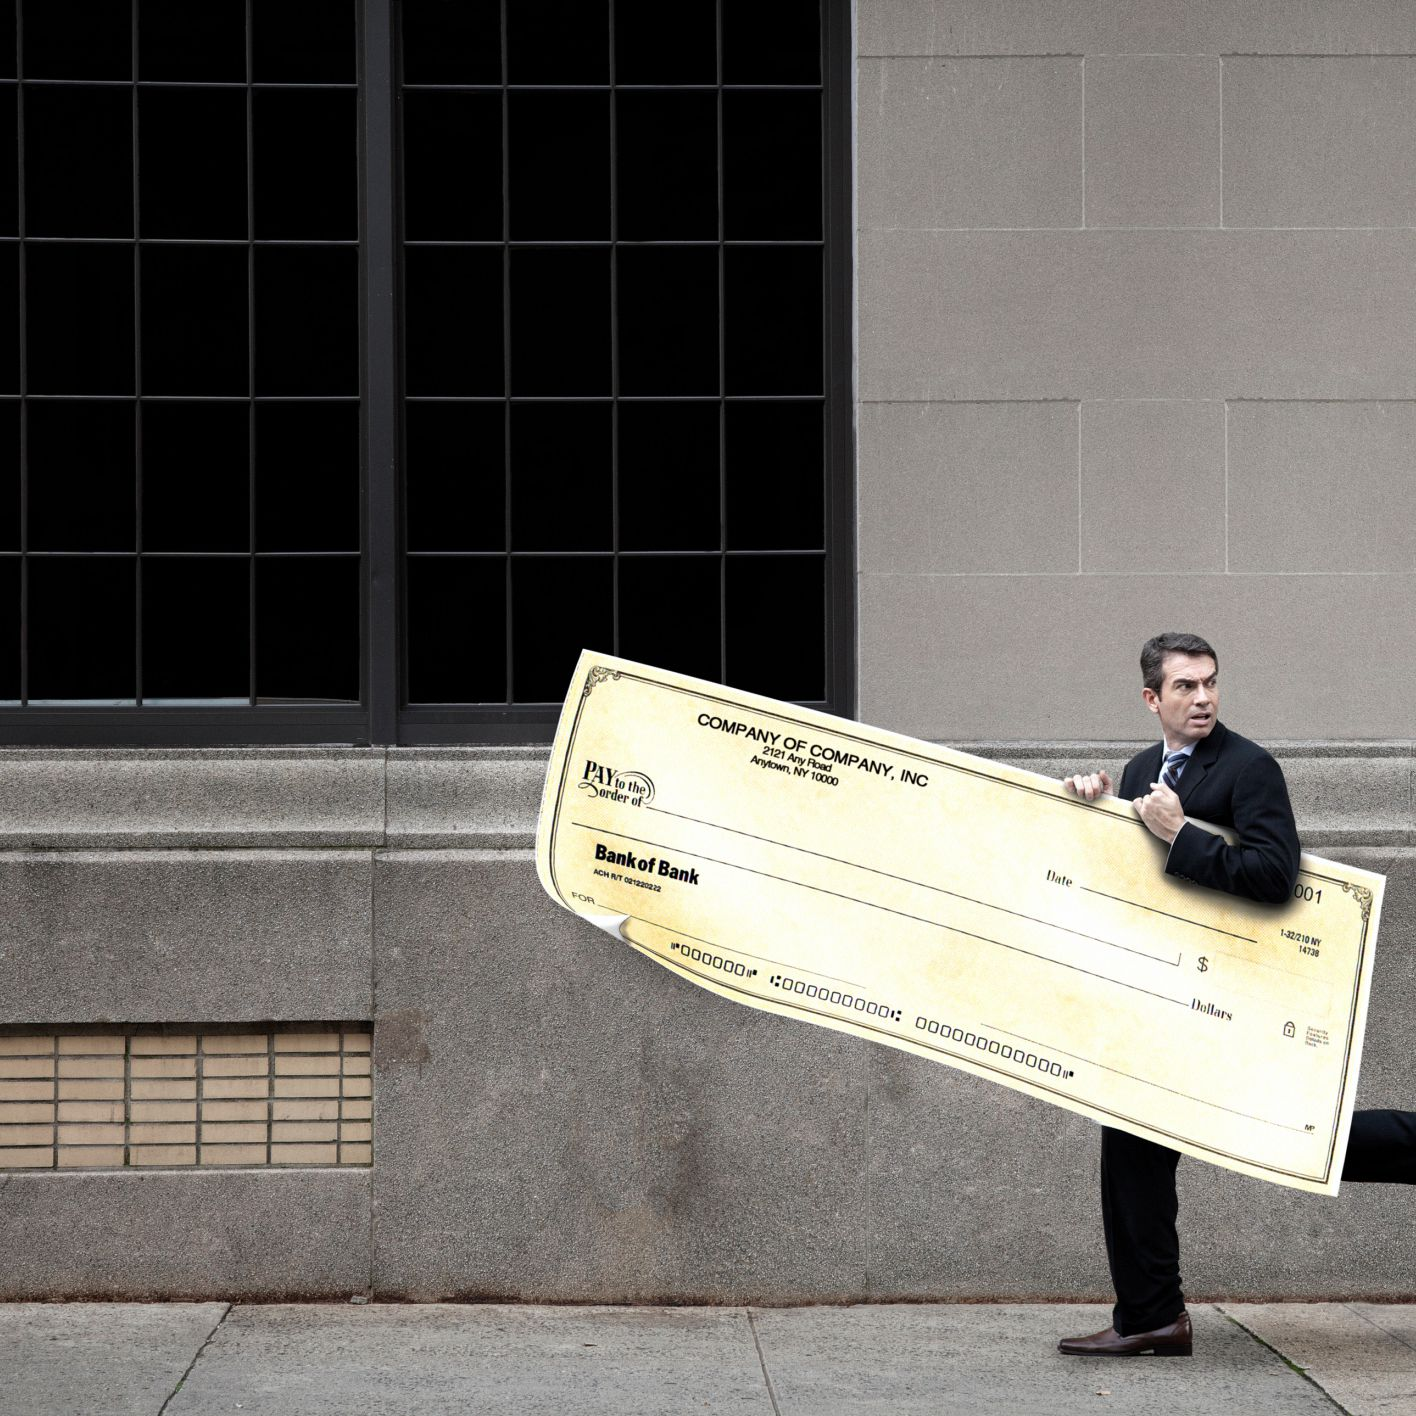 Publishers Clearing House Sweepstakes—Are They Scams?